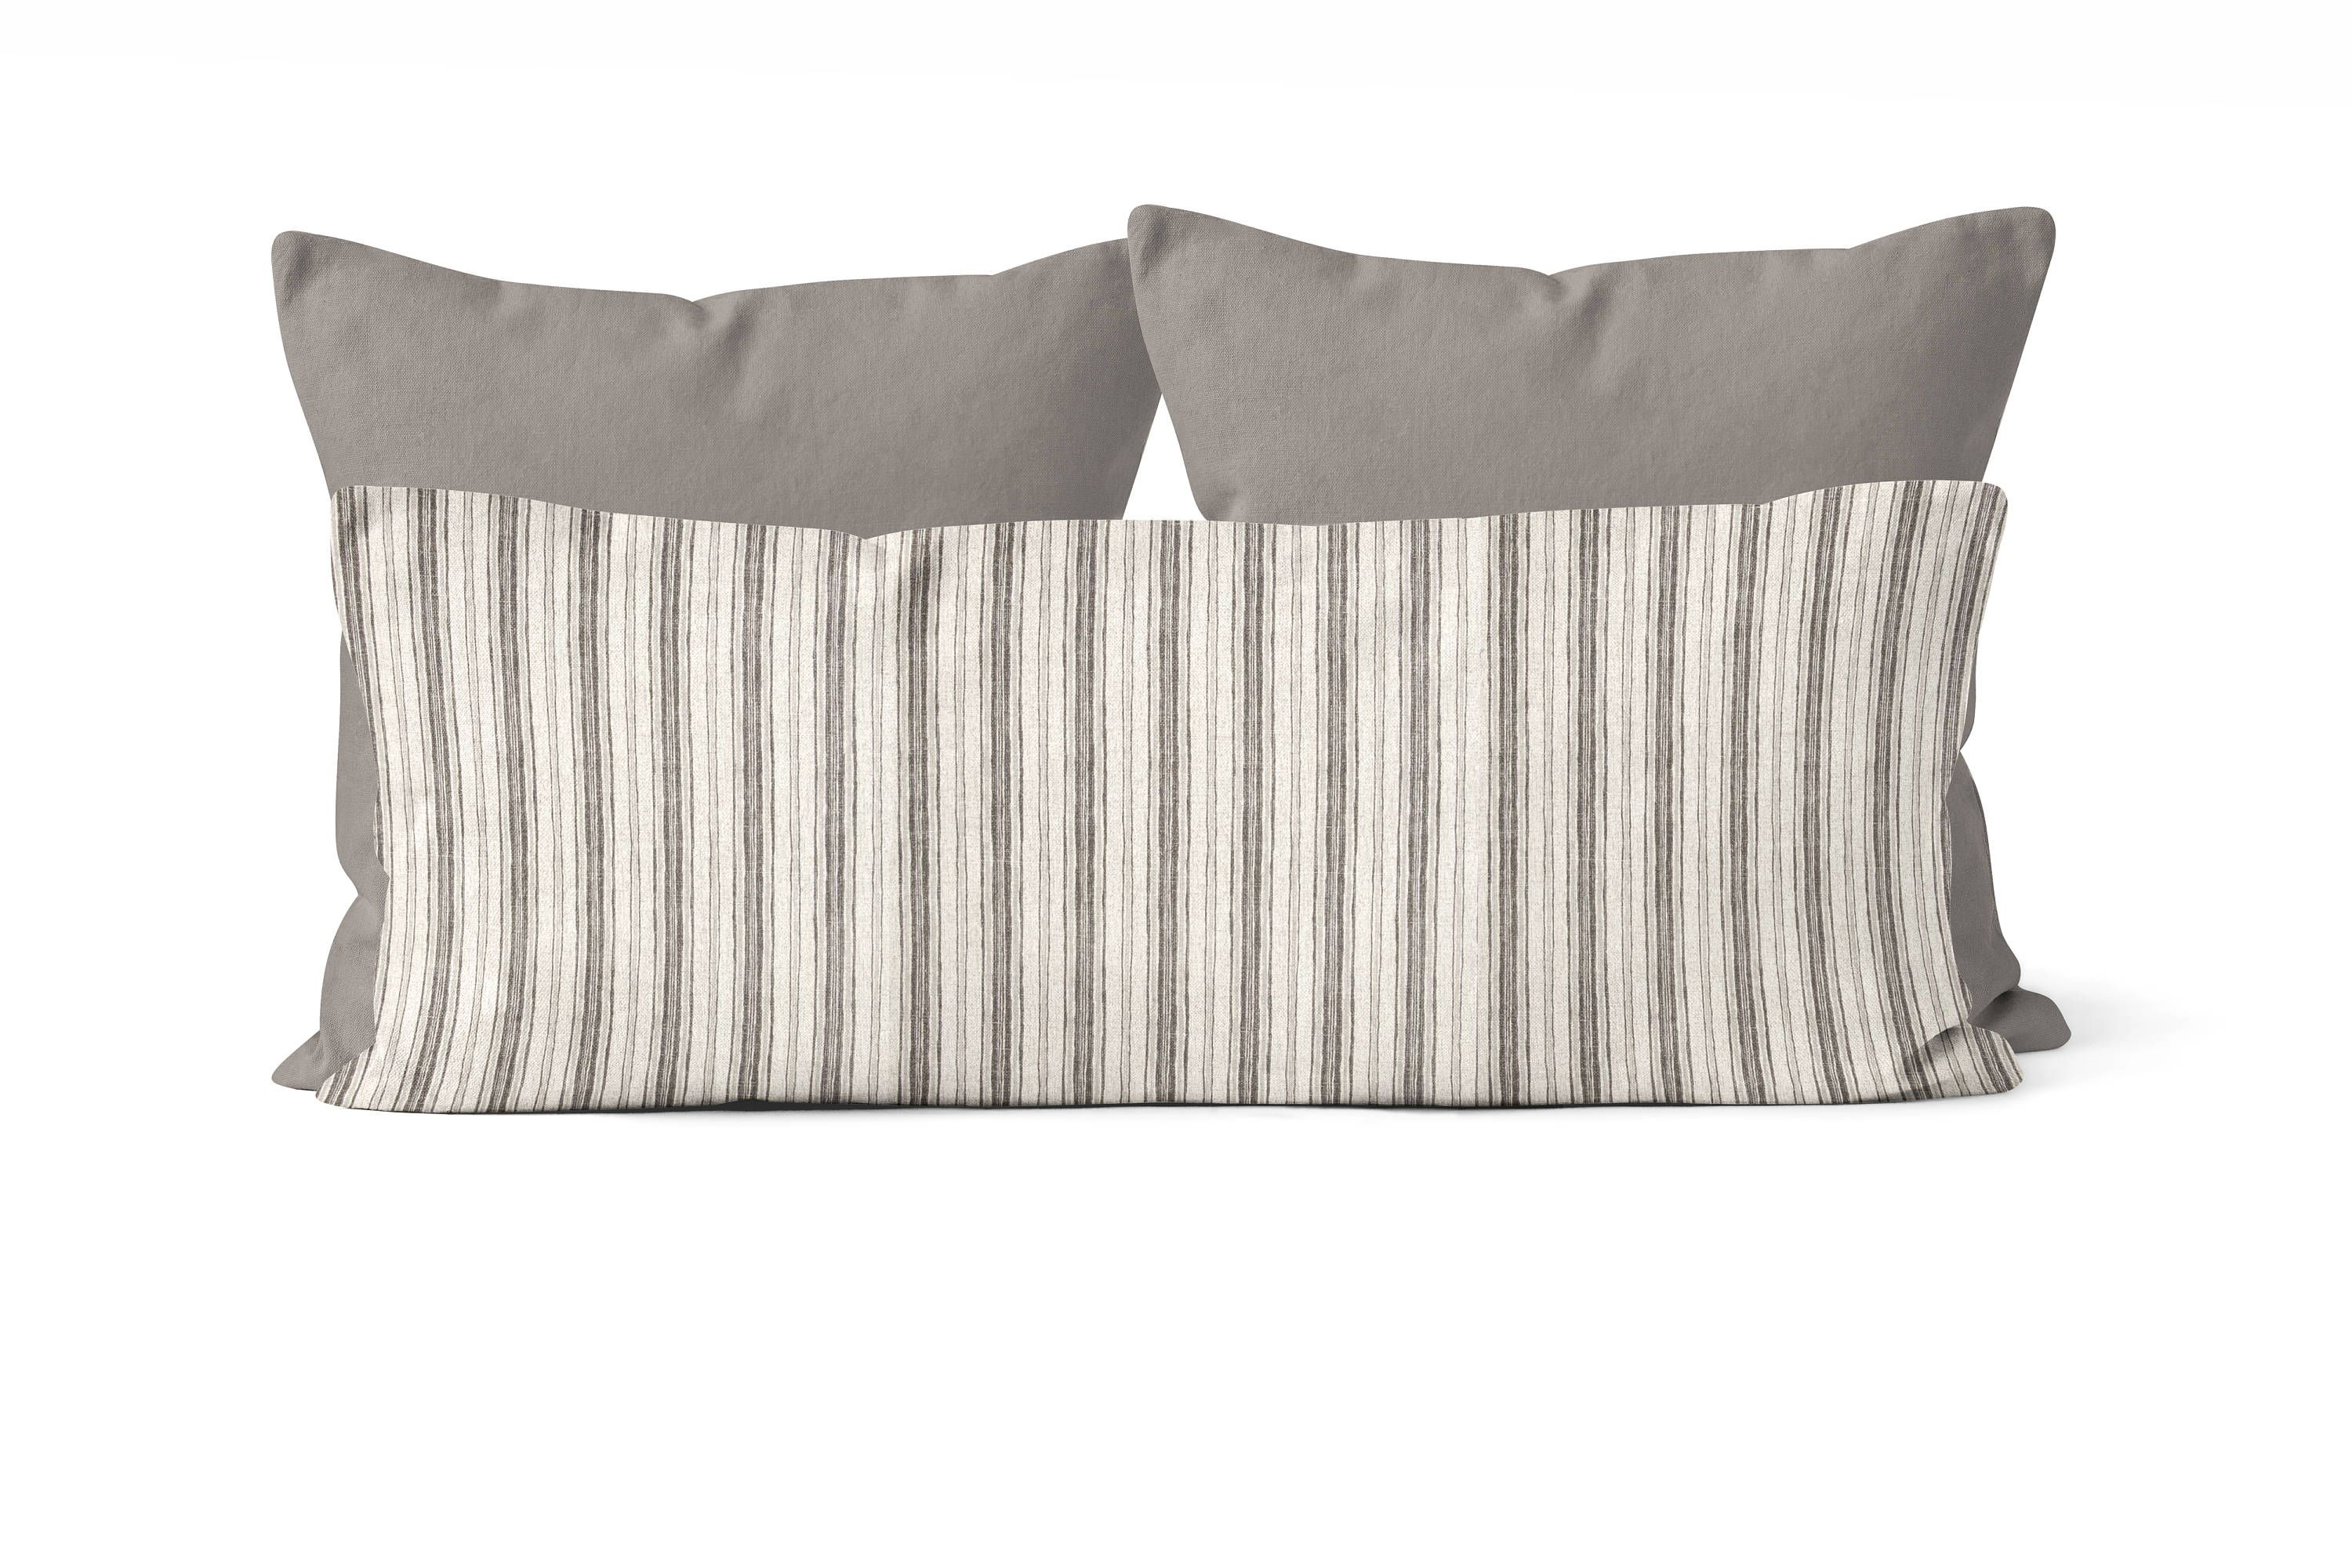 Decorative Body Pillow Covers.Stripe Body Pillow Cover 20x54 Inch Decorative Pillow Cover